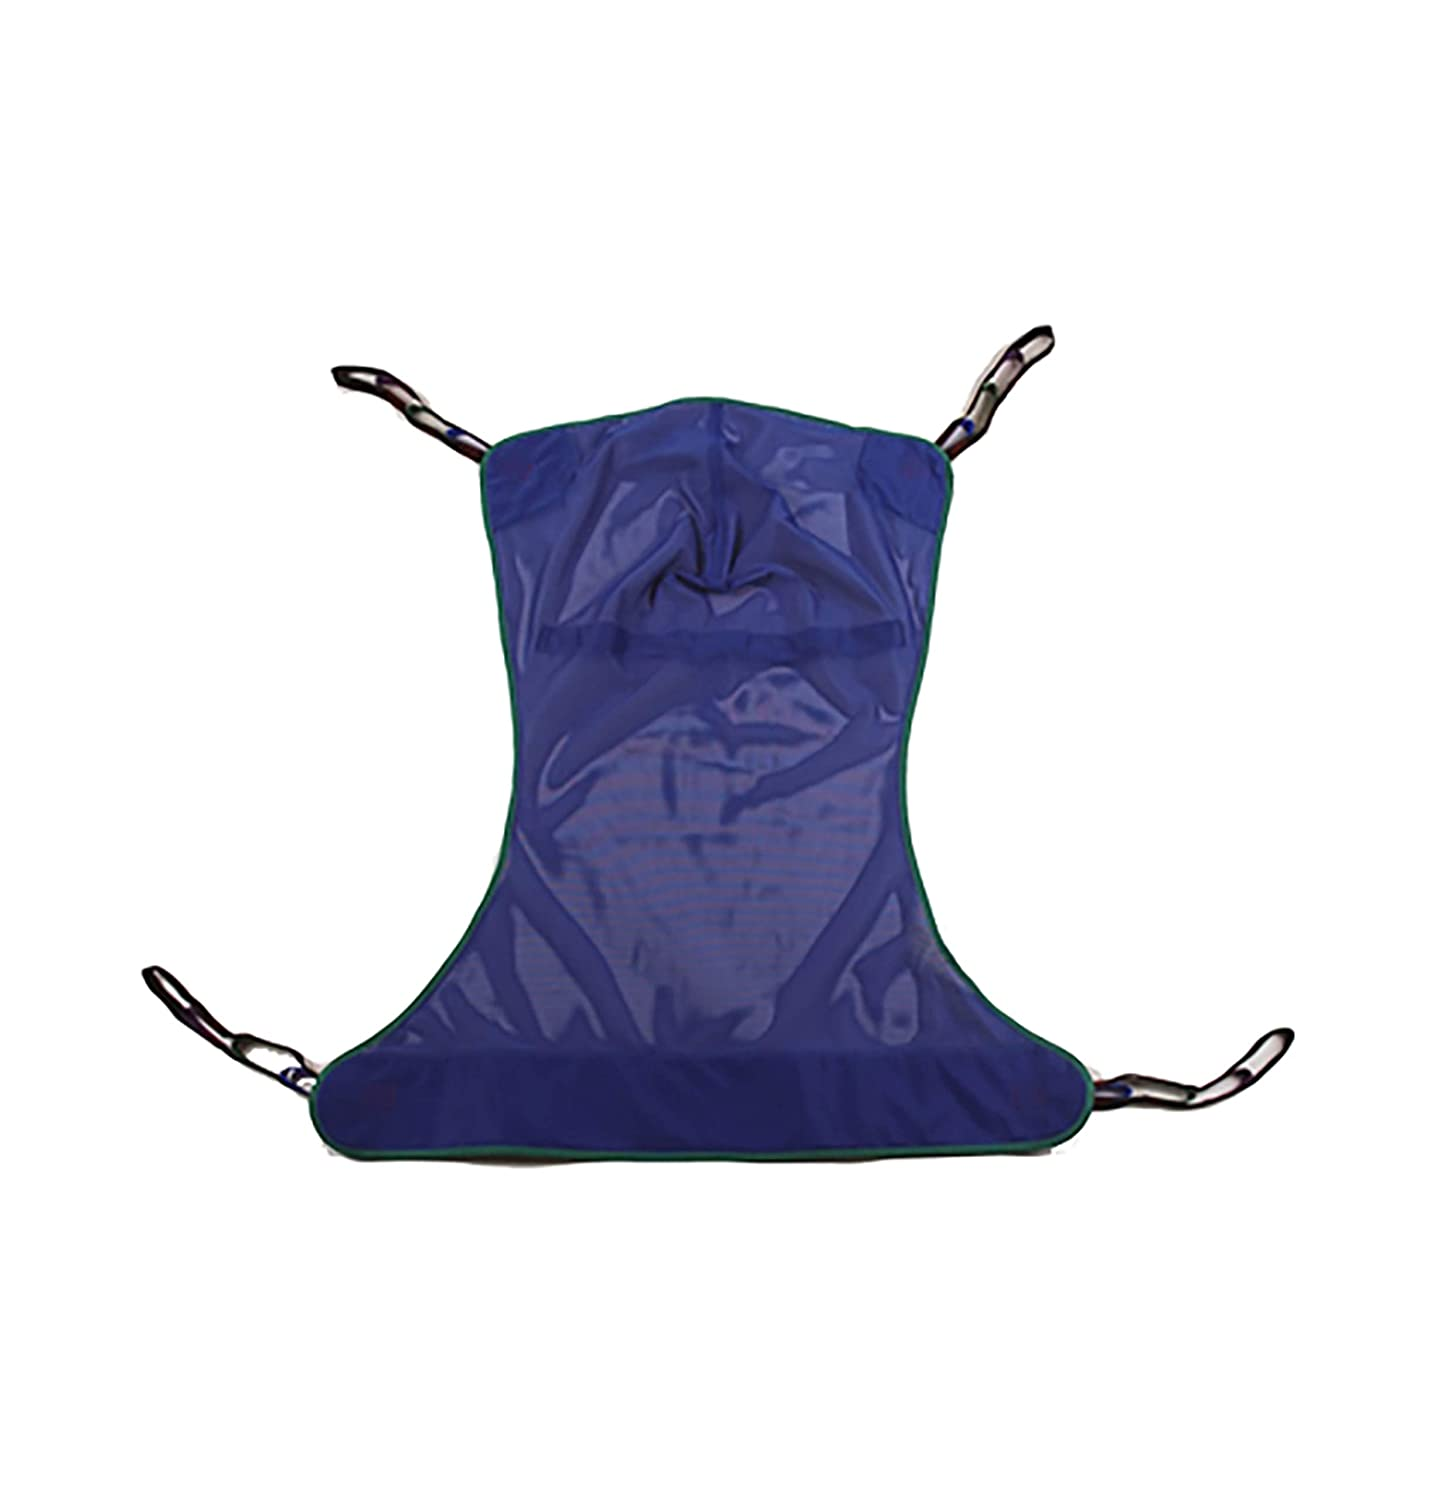 Invacare Reliant Full Body Sling for Patient Lifts, Solid Fabric, X-Large, R117